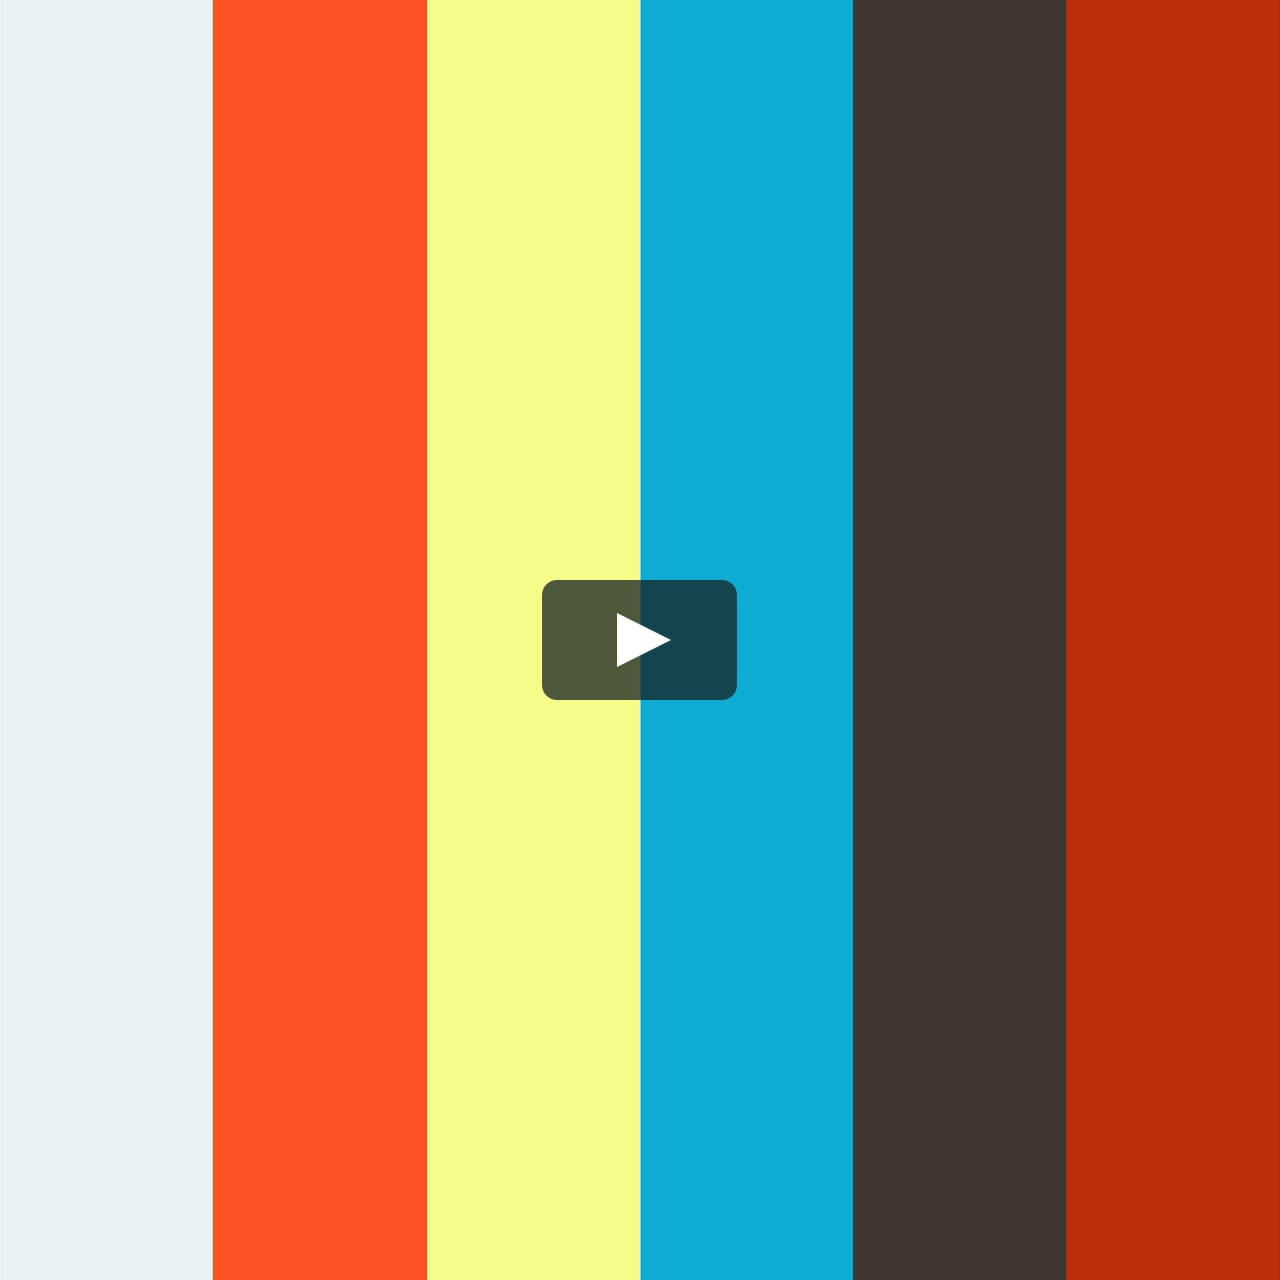 Actor Porno Gay Portugues diego sans: gay porn star interview